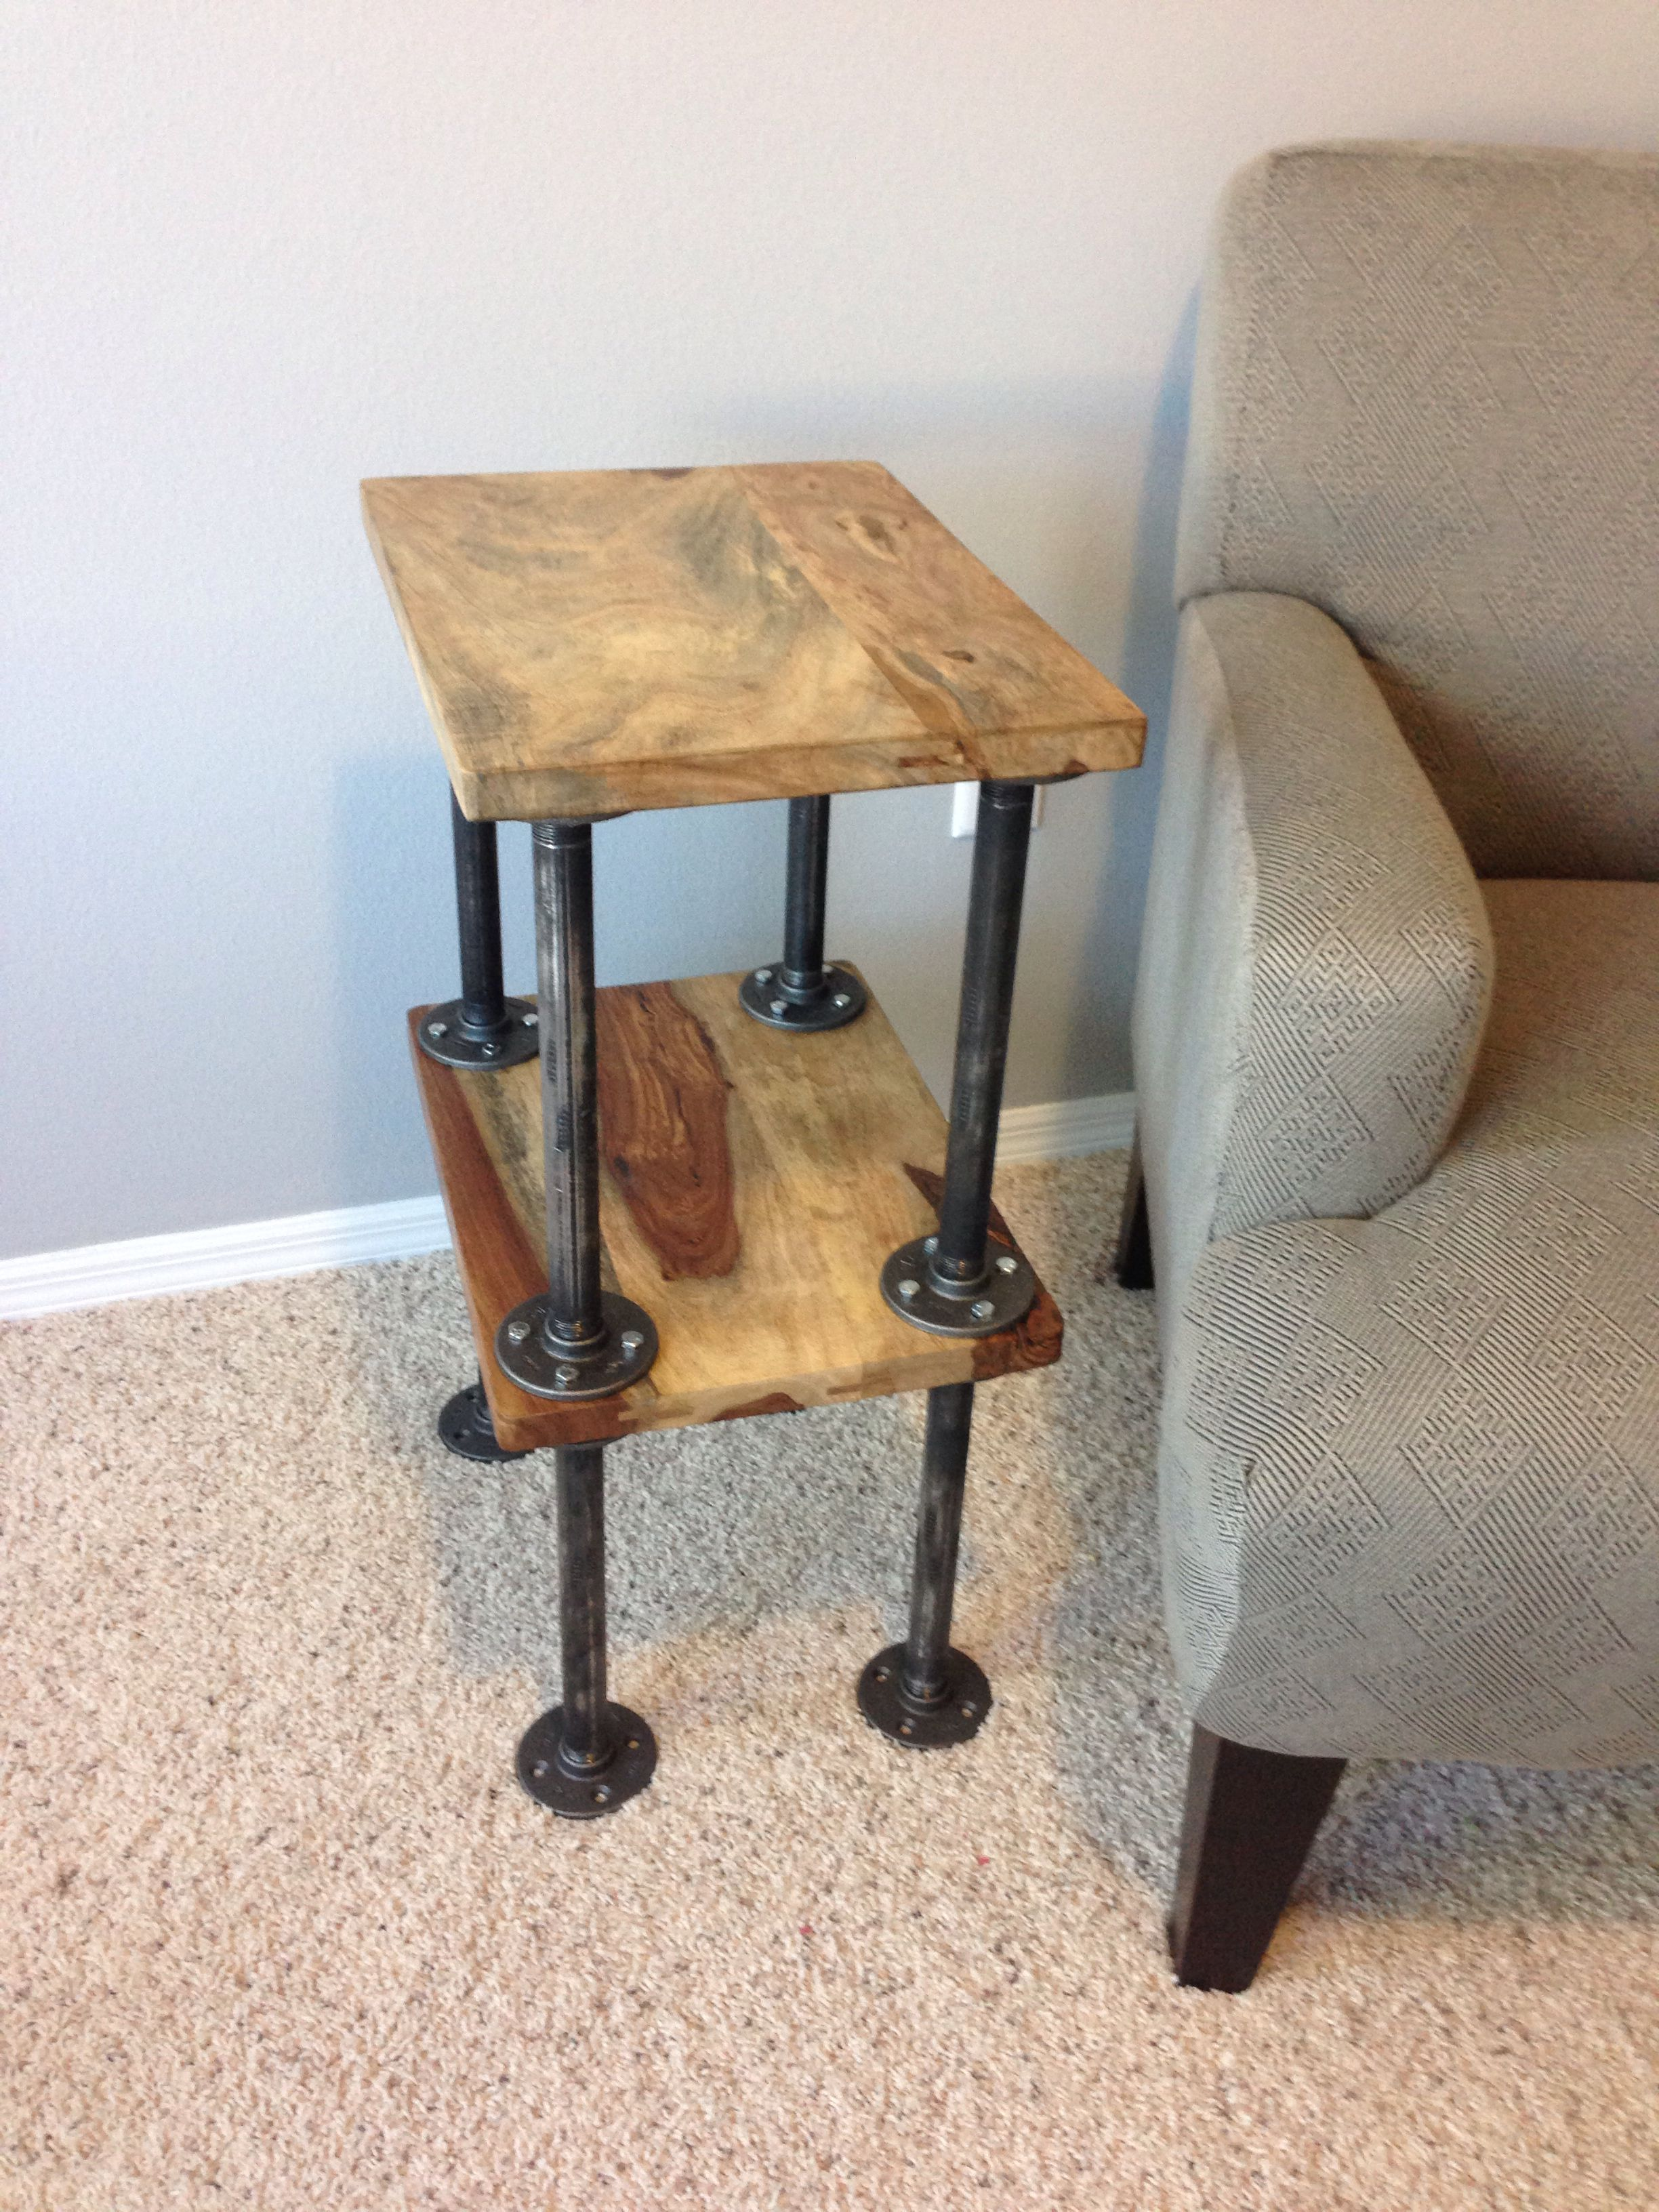 Coffee Table Used 2 Chopping Blocks From Bed Bath Beyond 10 Black 3 4 Pipe Cut Into 12 Length And Threaded By Home Depot 16 Floor Mounts